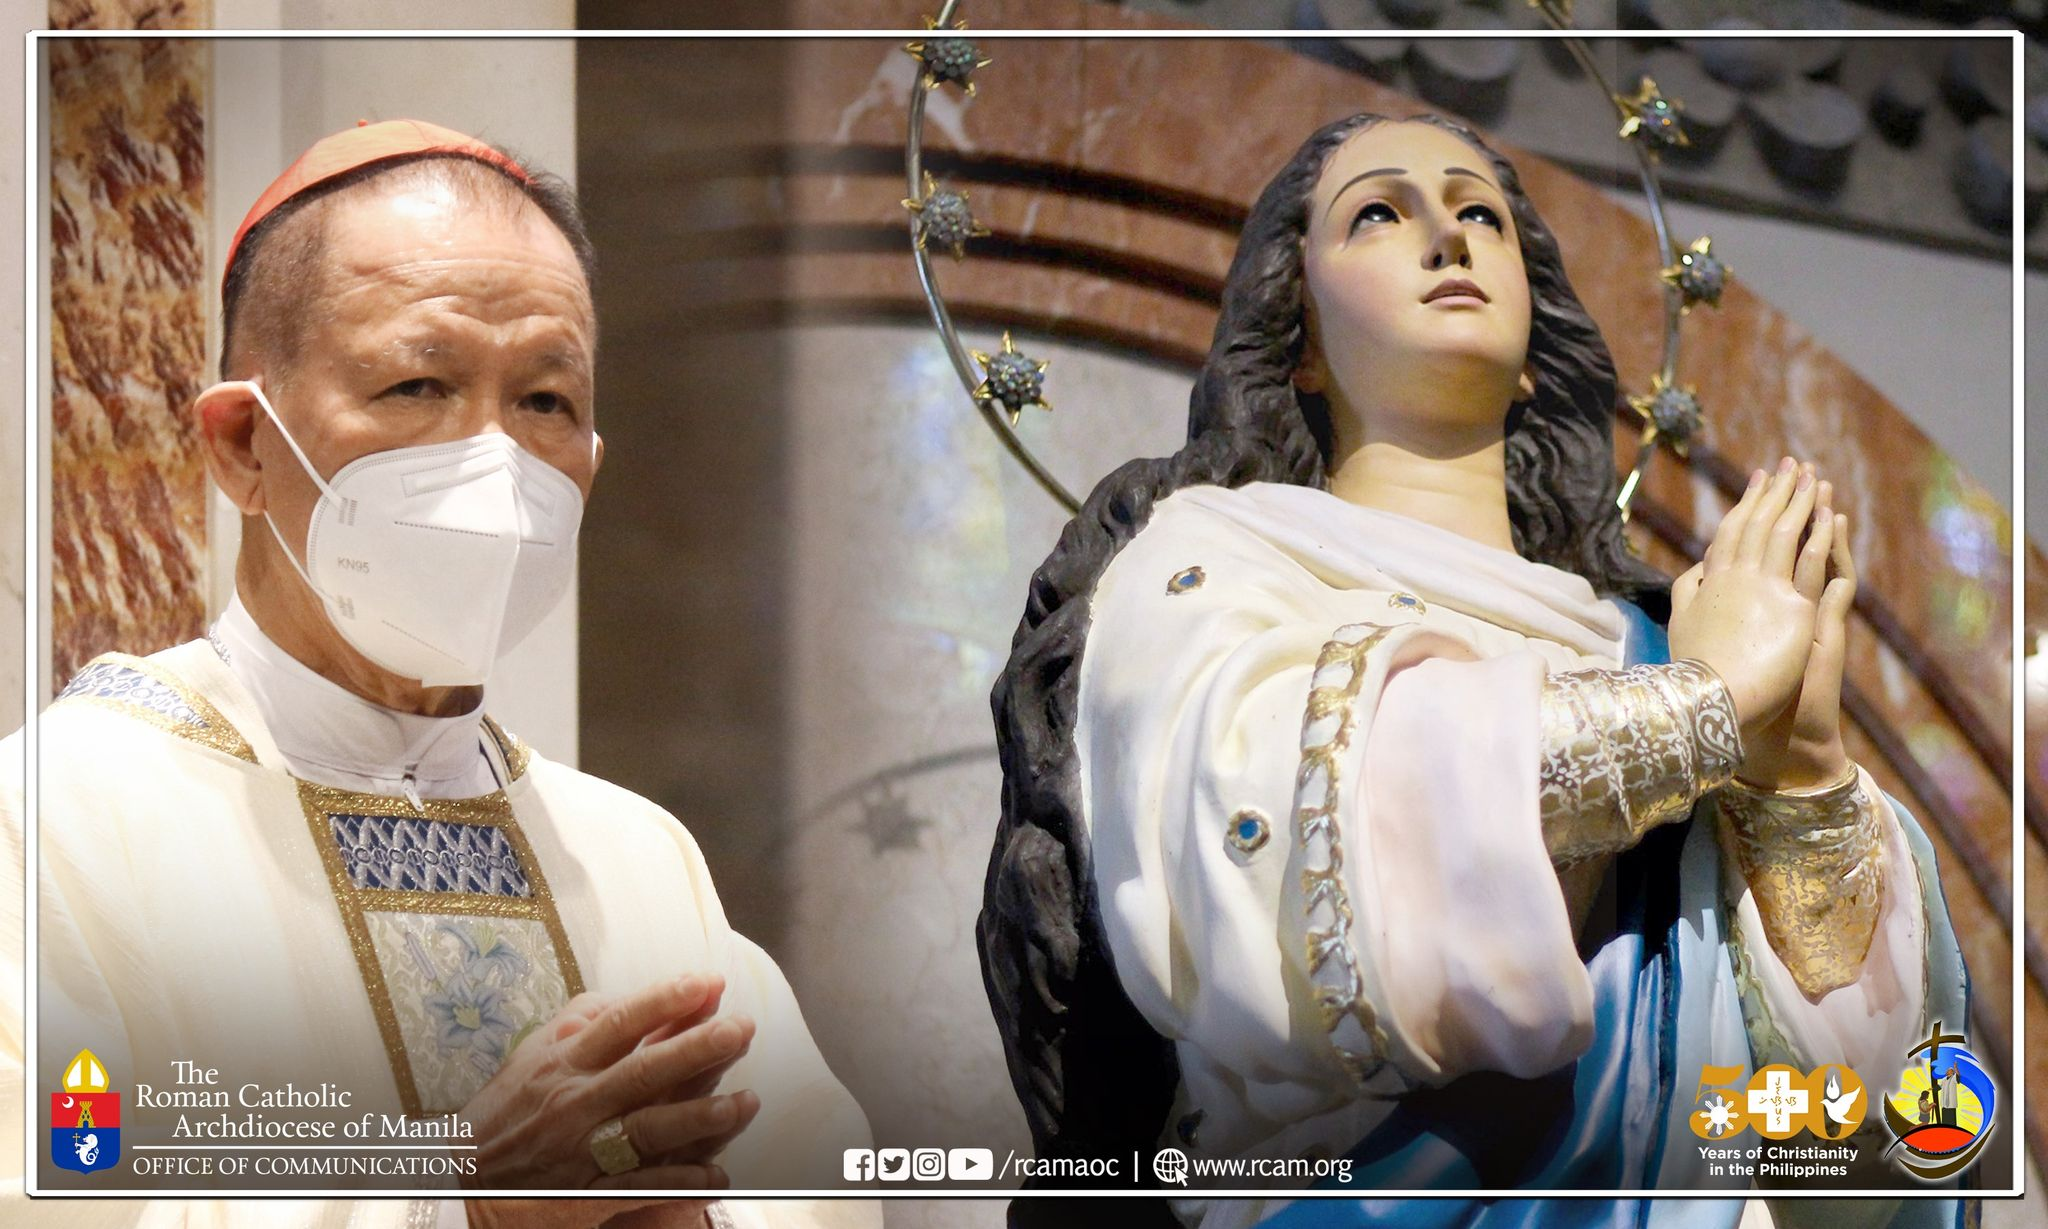 The Best Gift for Mama Mary's Birthday